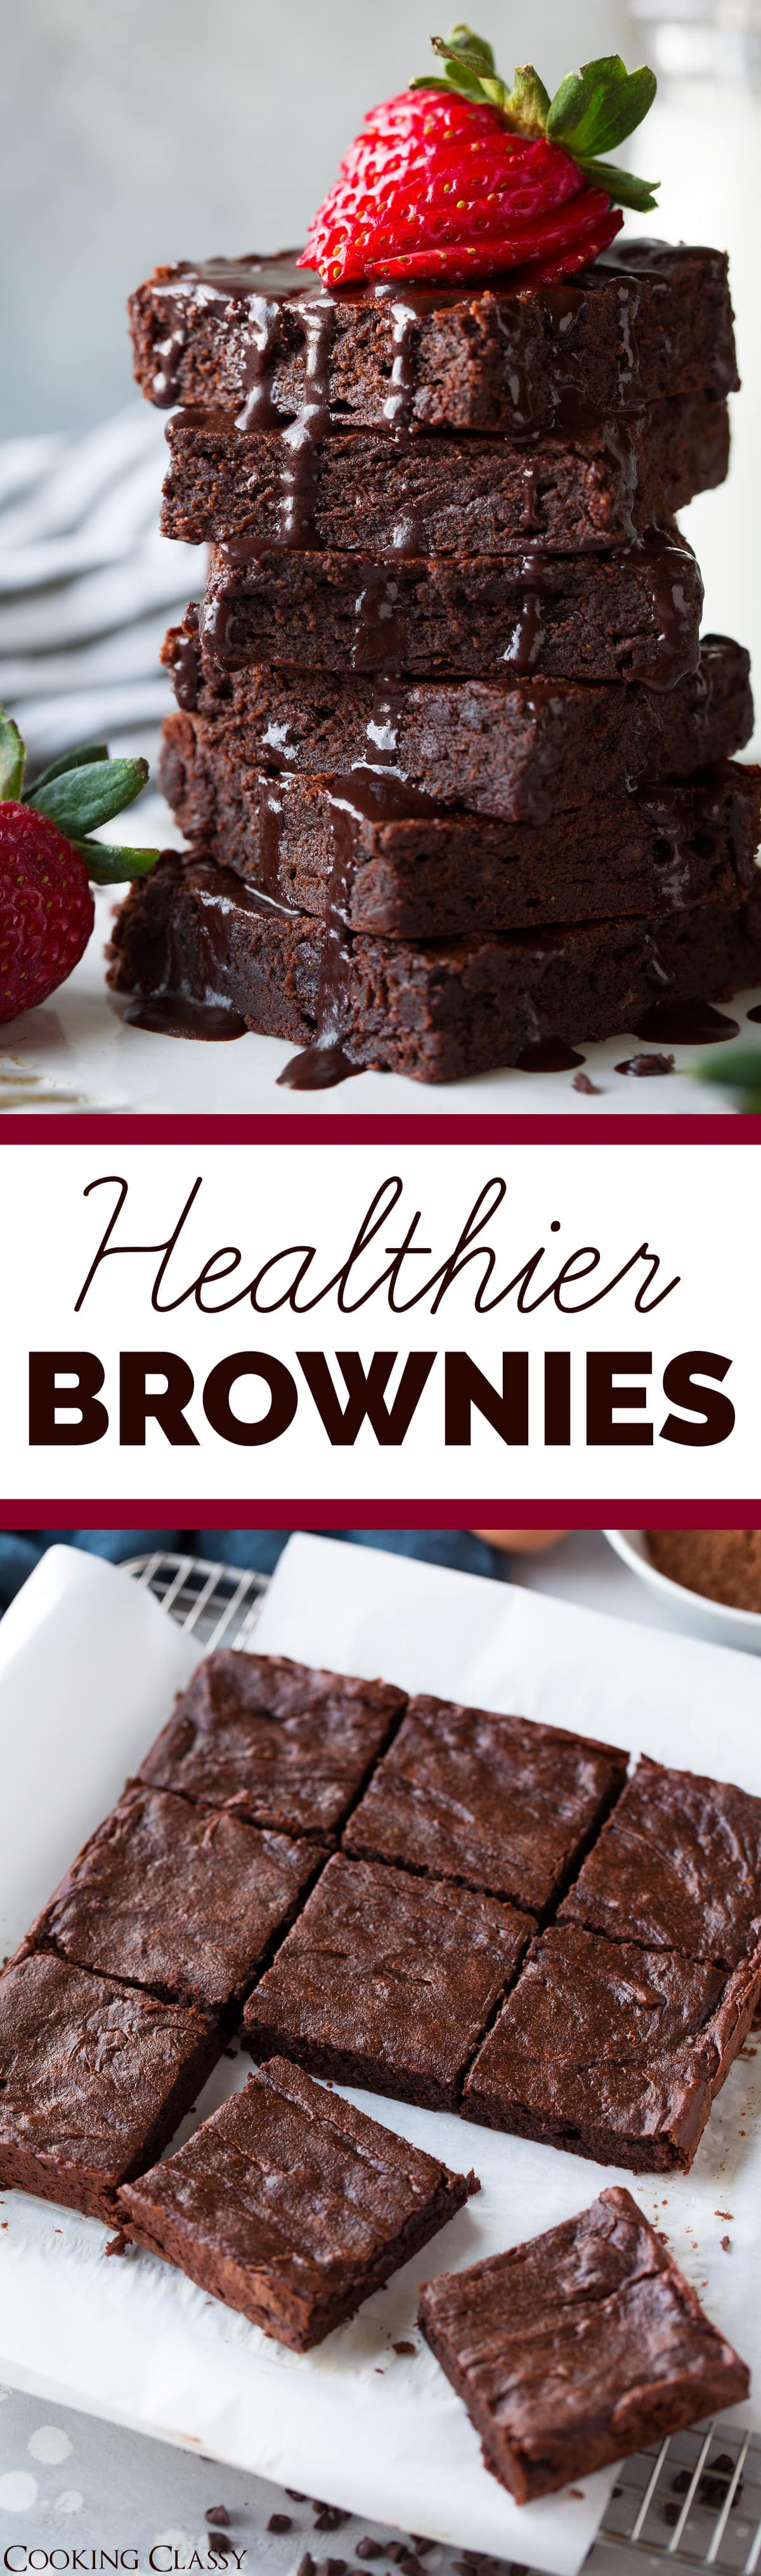 Healthier Brownies - SO GOOD! Made healthier without white flour, butter and refined sugar. Still perfectly decadent and deliciously satisfying. Sure to curb those chocolatey cravings! #brownies #dessert #healthierdessert #chocolate #valentines